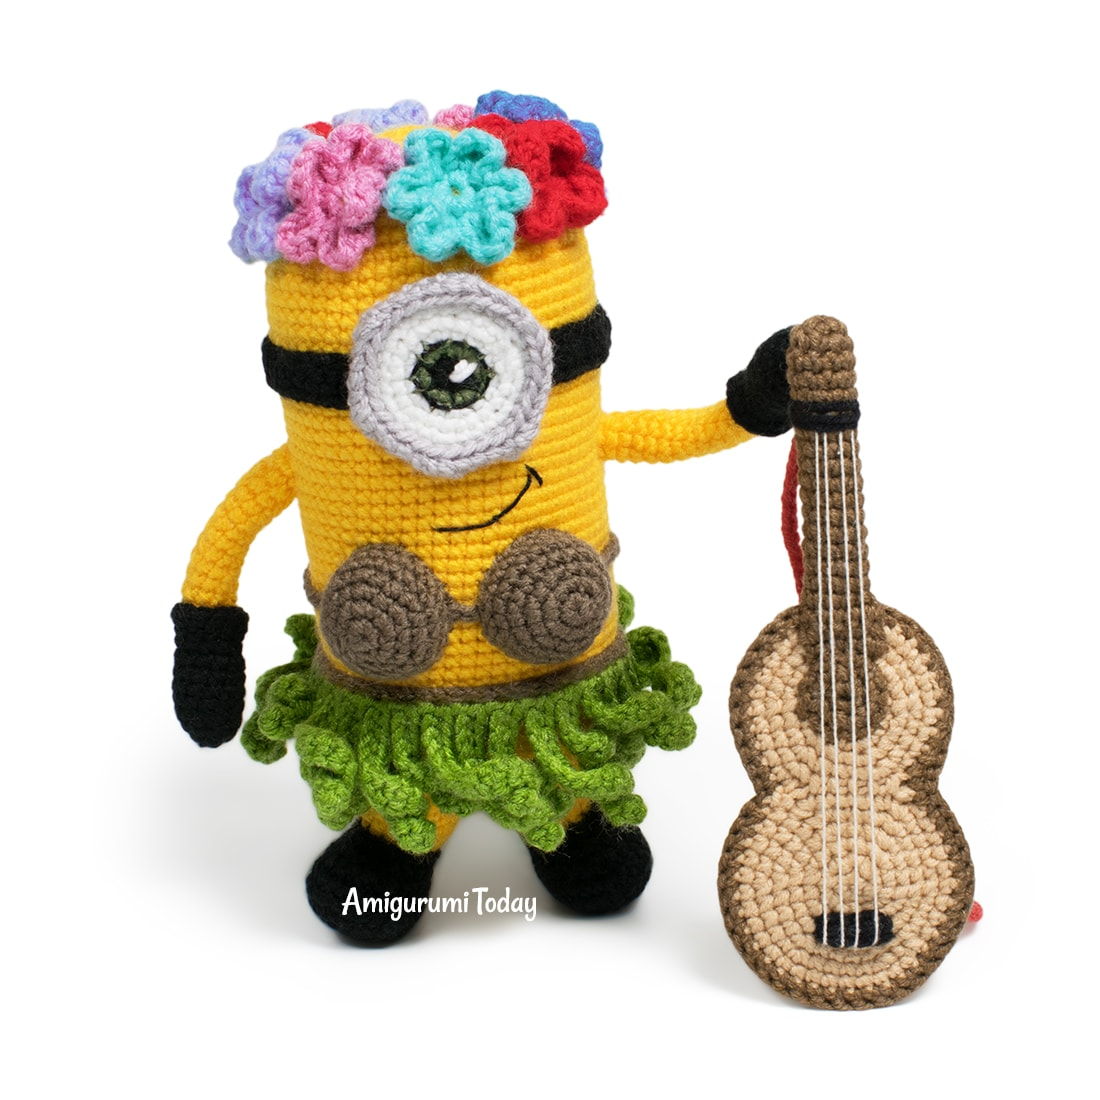 Free Amigurumi Hawaiian Minion Crochet Pattern by Amigurumi Today